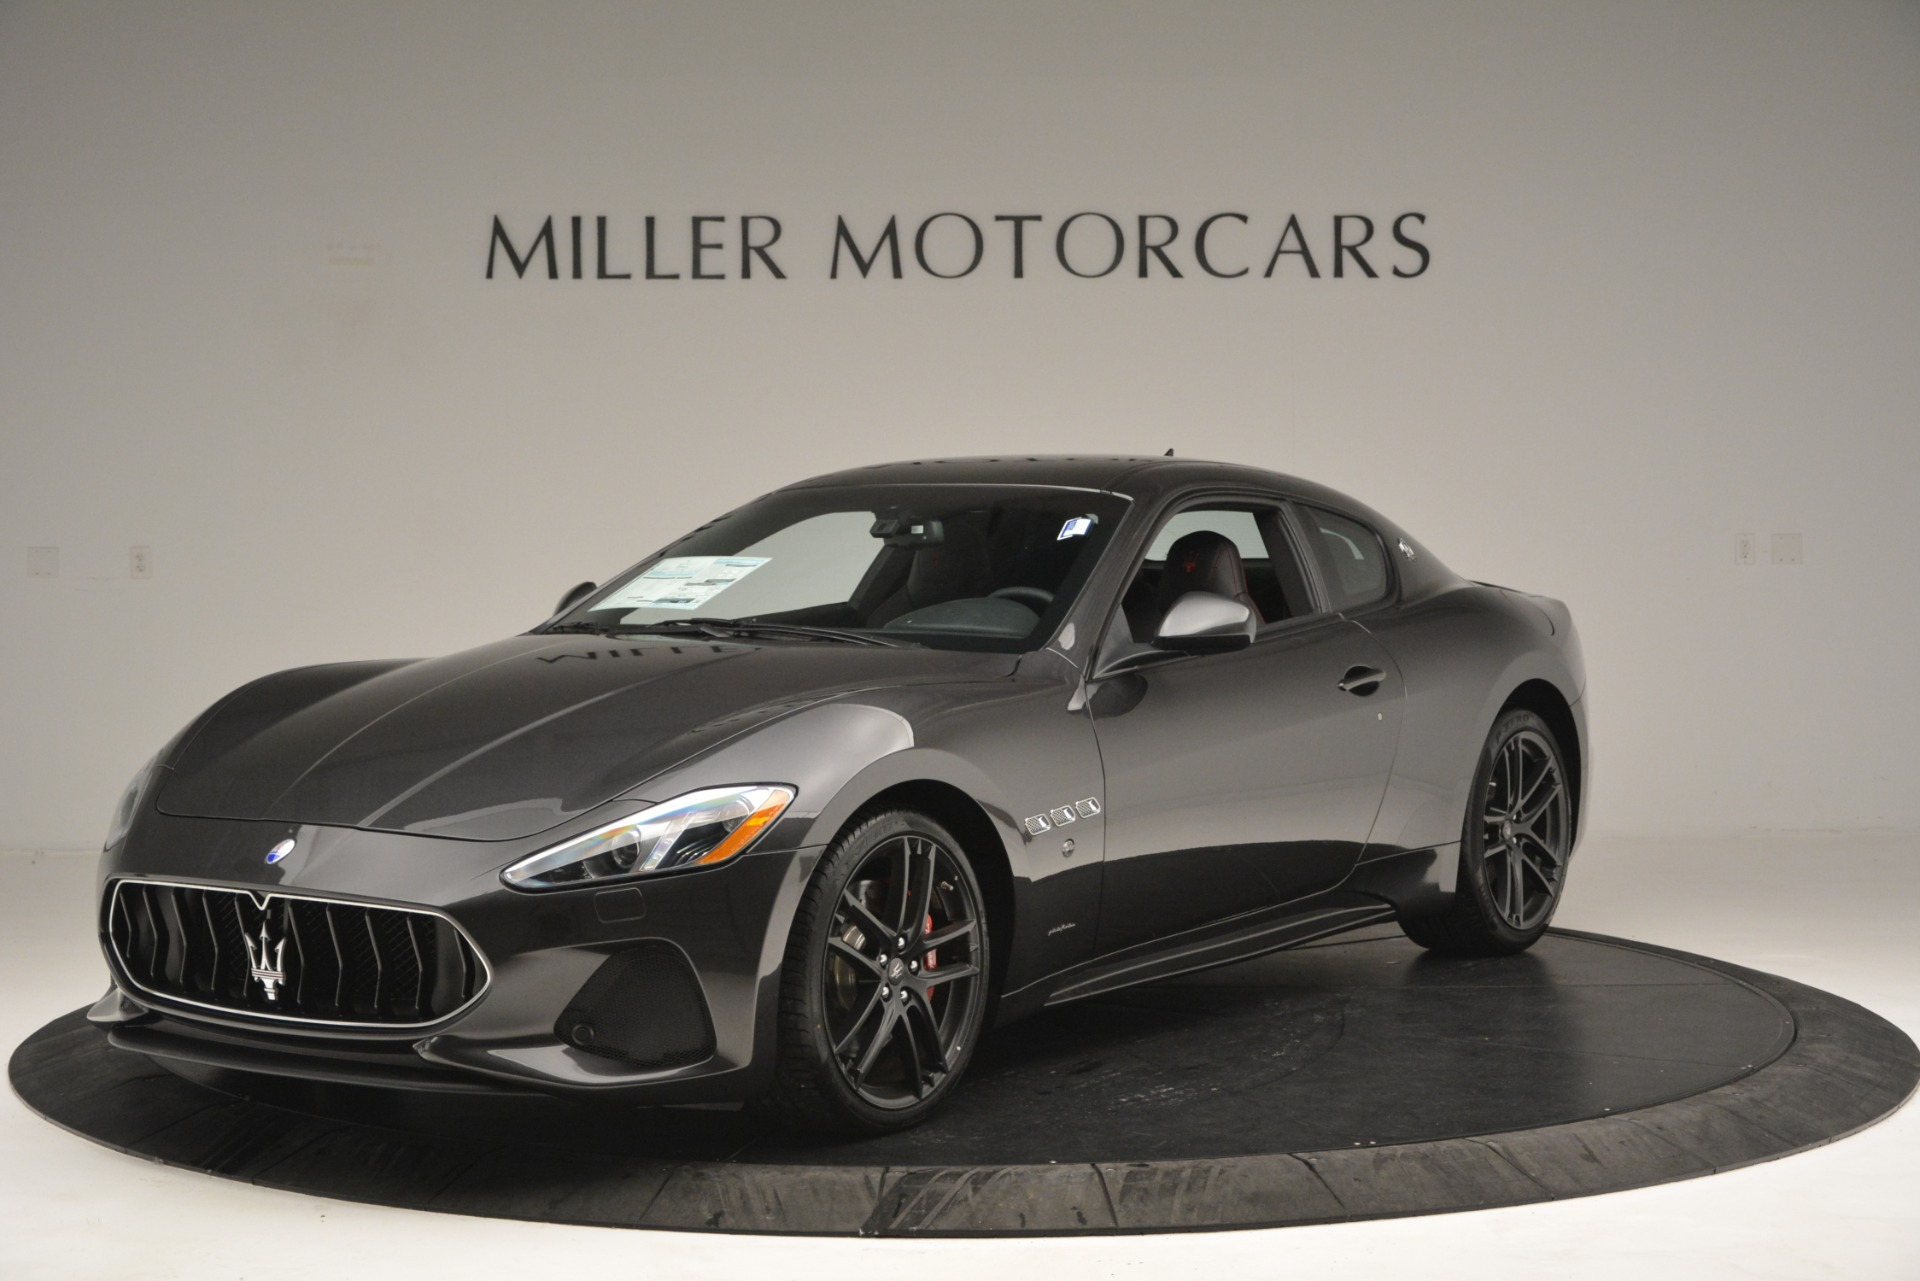 New 2018 Maserati GranTurismo Sport for sale Sold at Bugatti of Greenwich in Greenwich CT 06830 1